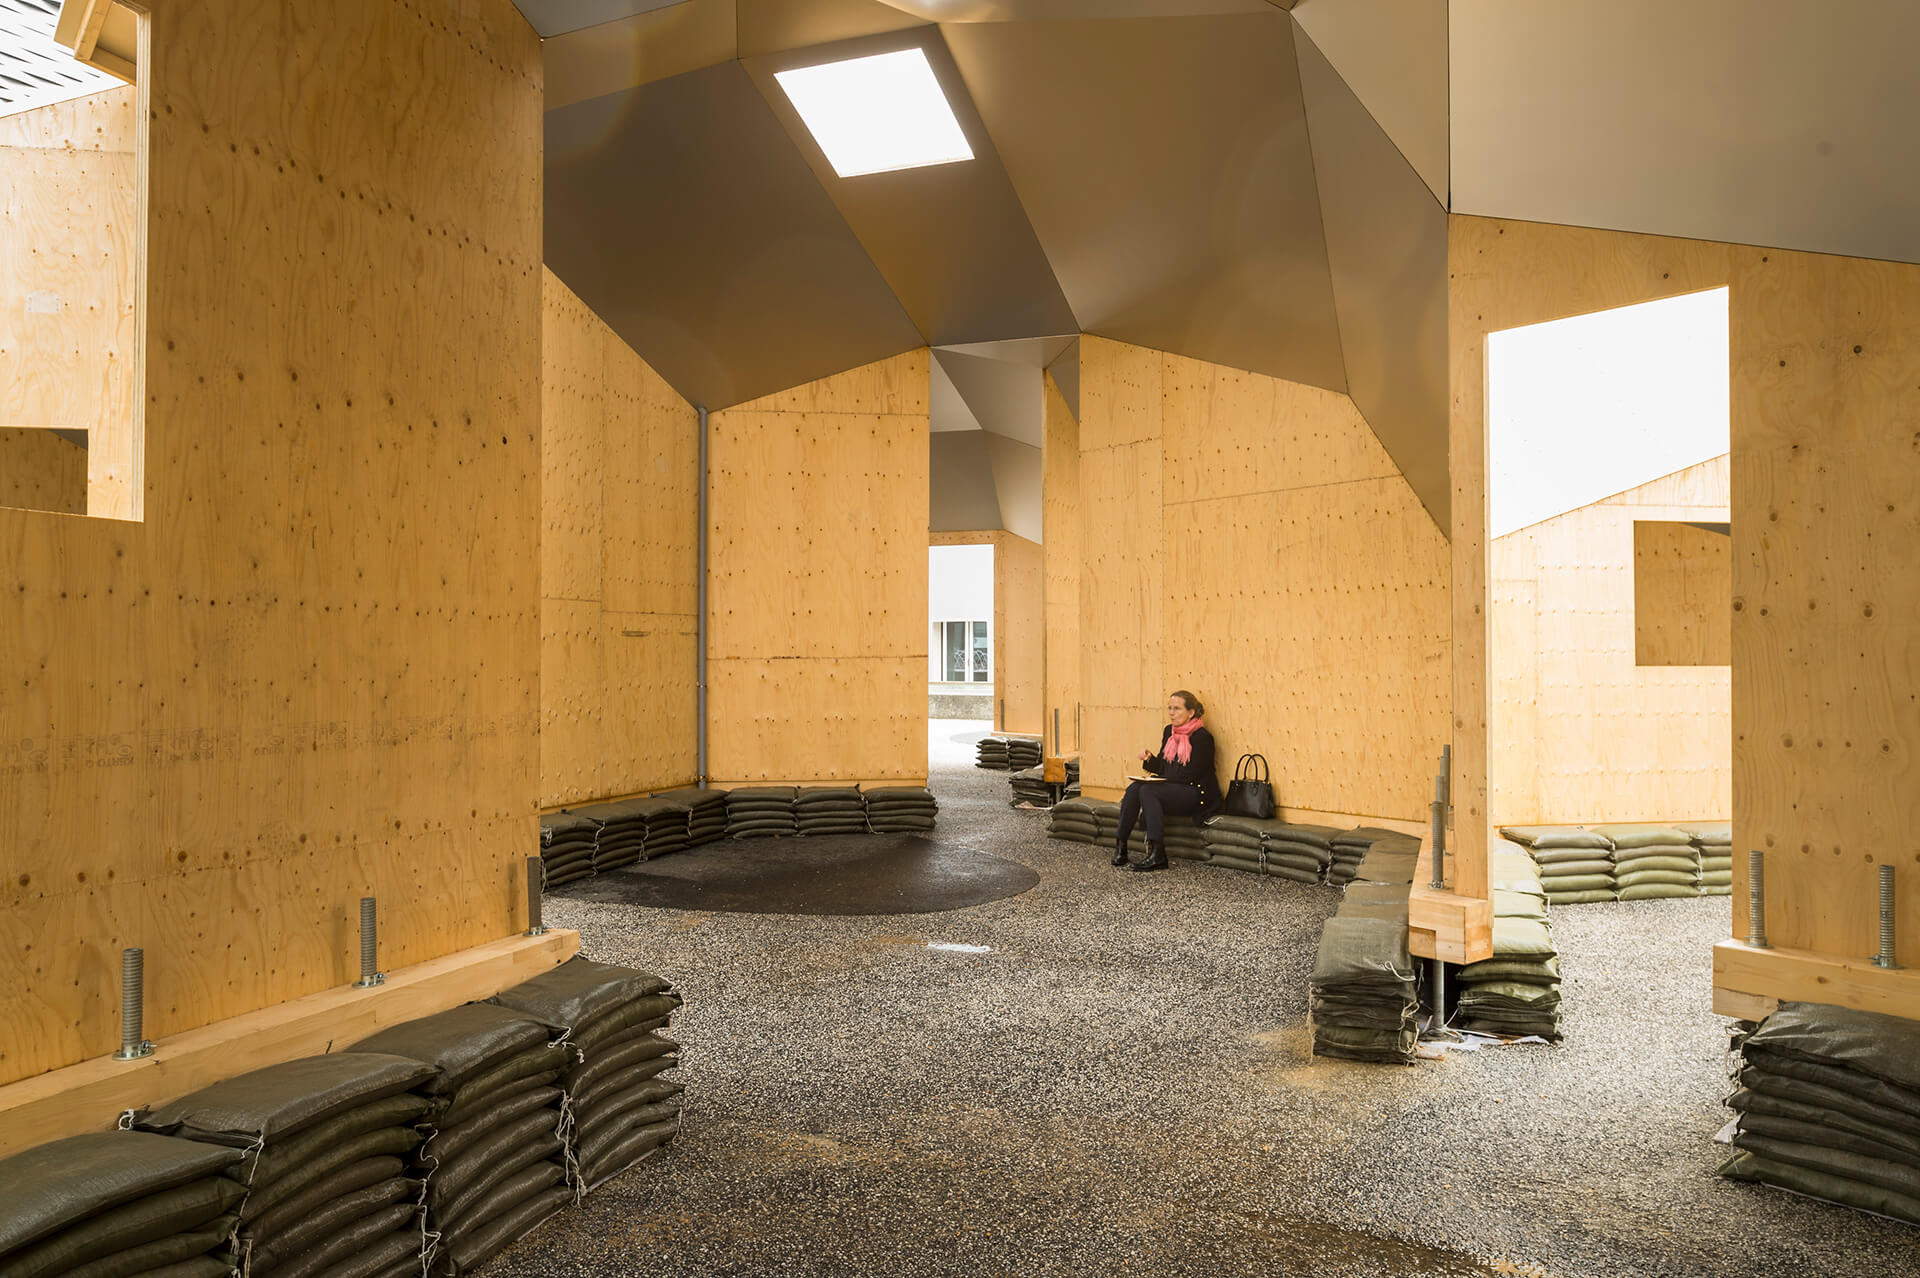 Zome Alloy, a lightweight structural wood shell, at the Art Basel engaged the visitors in the question of what a house can be | Los Angeles Water School  | Oscar Tuazon | STIRworld